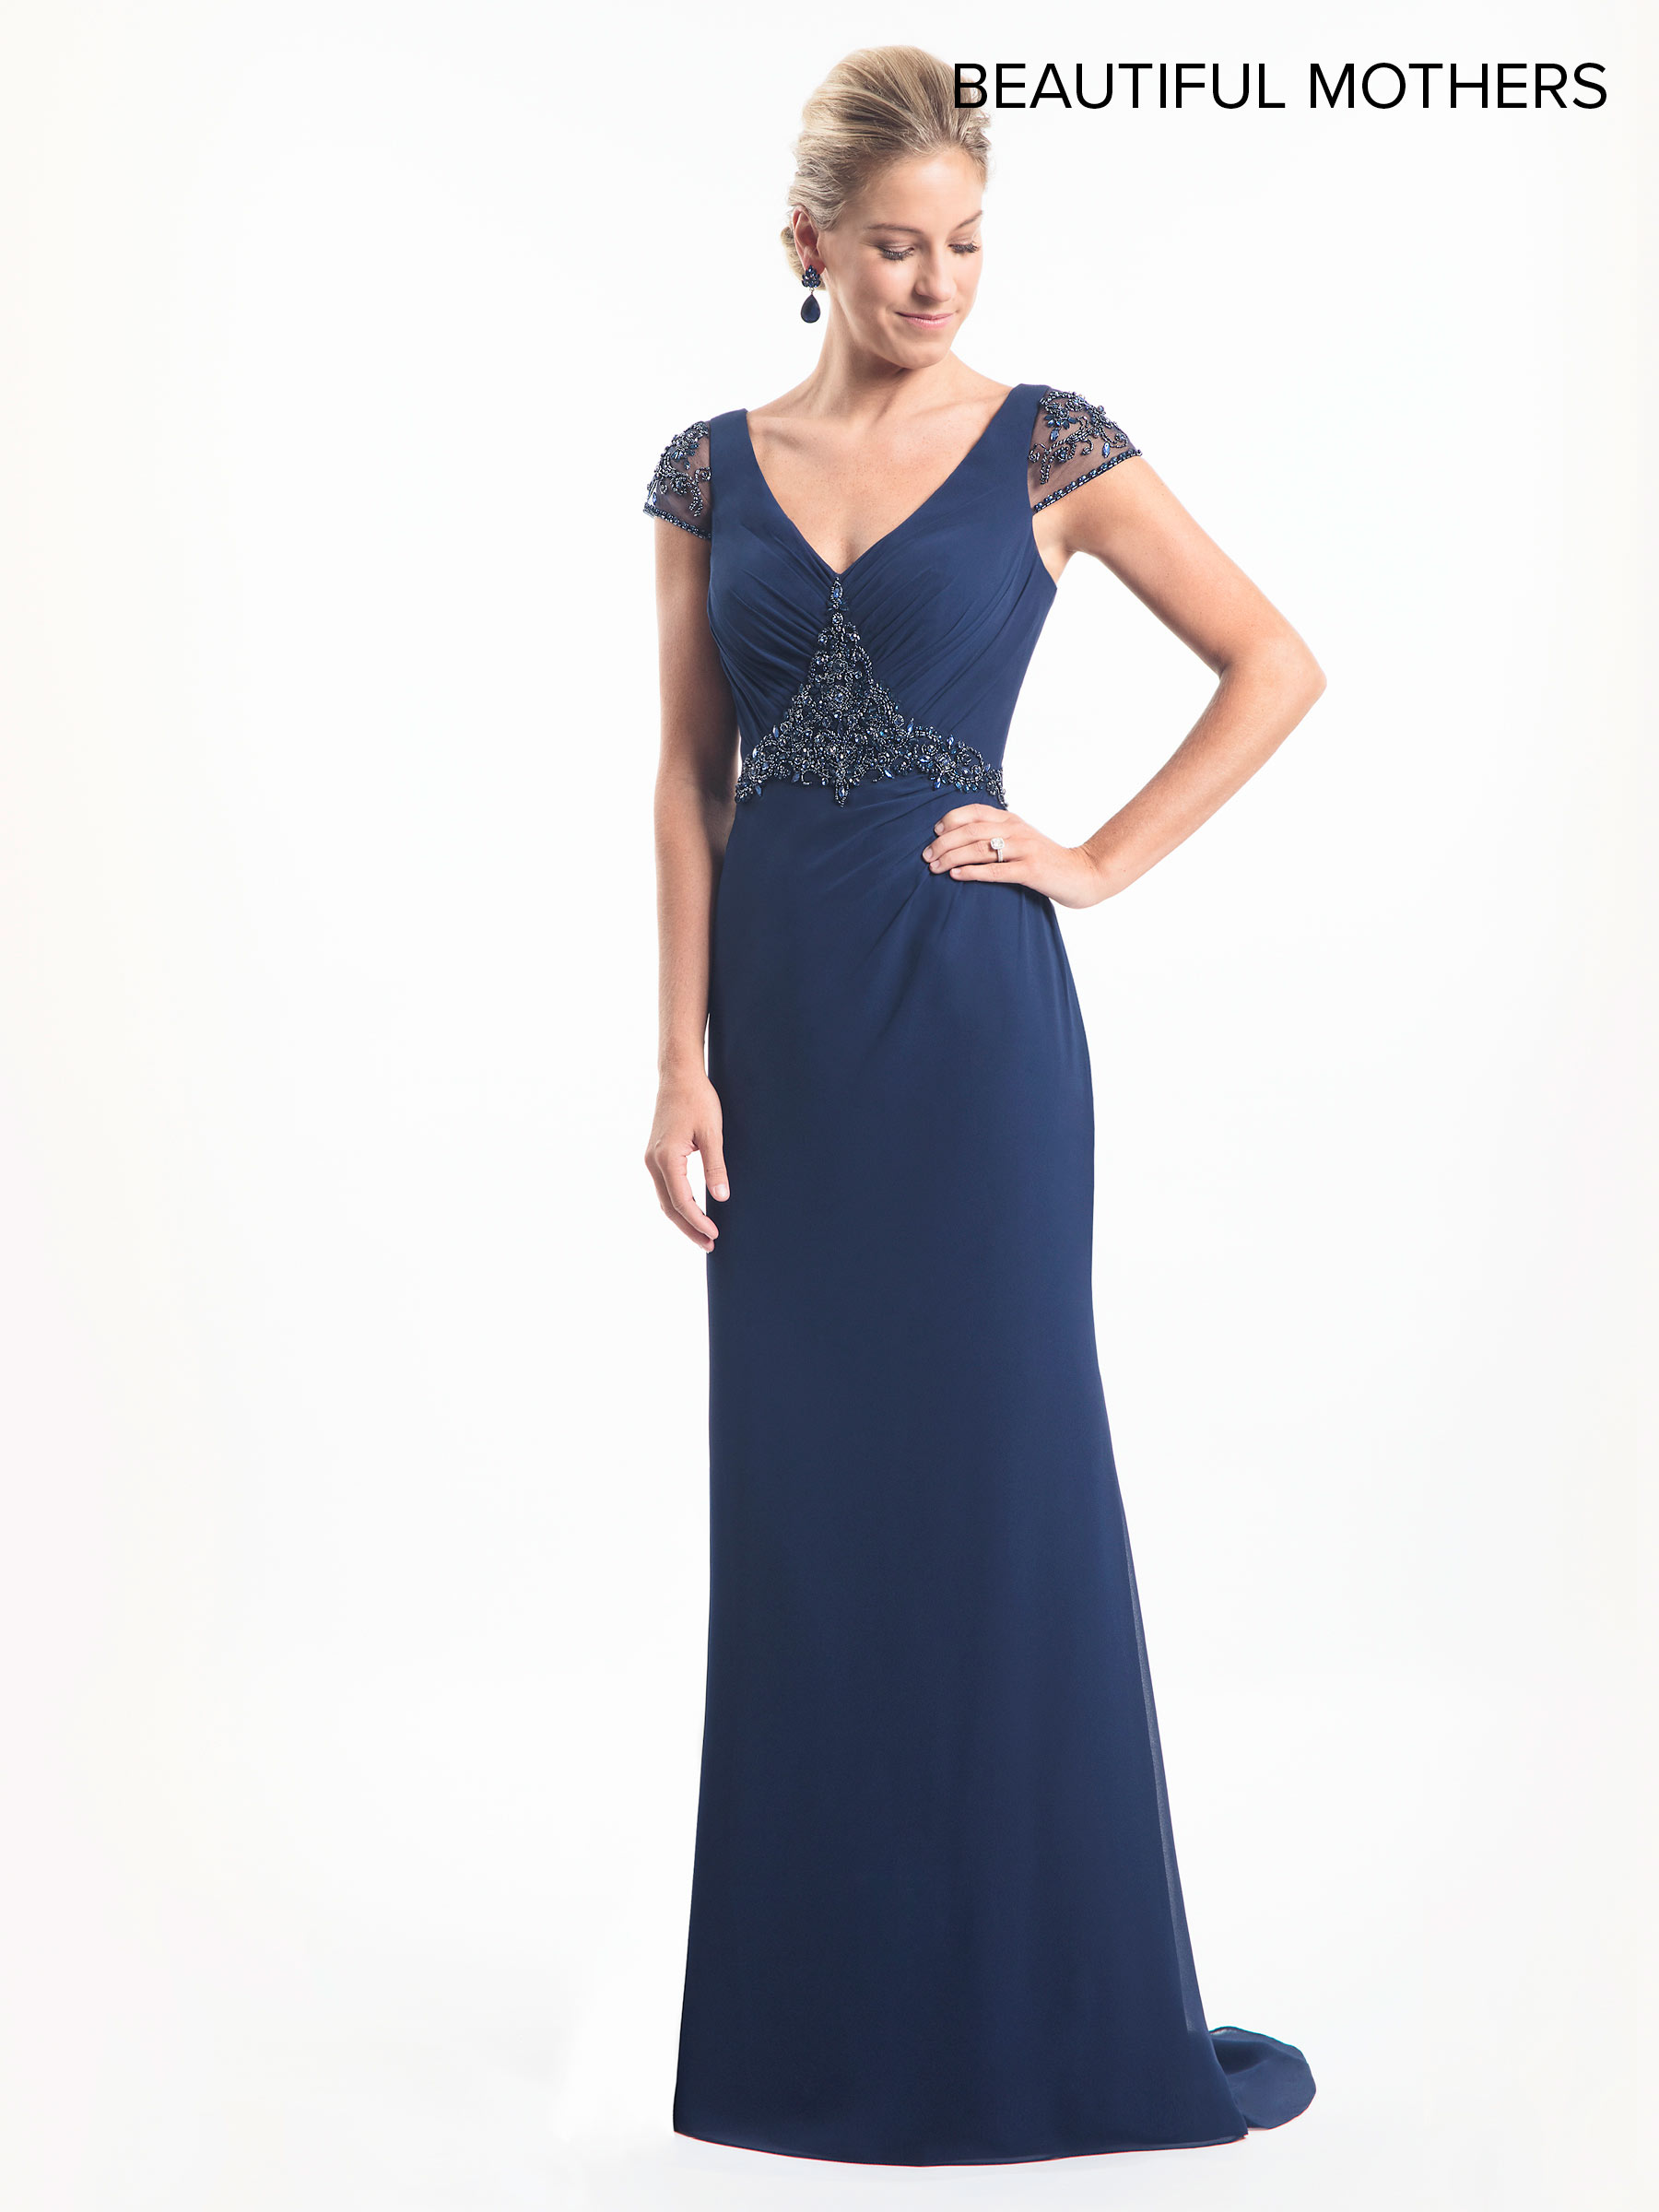 Mother Of The Bride Dresses | Beautiful Mothers | Style - MB8012